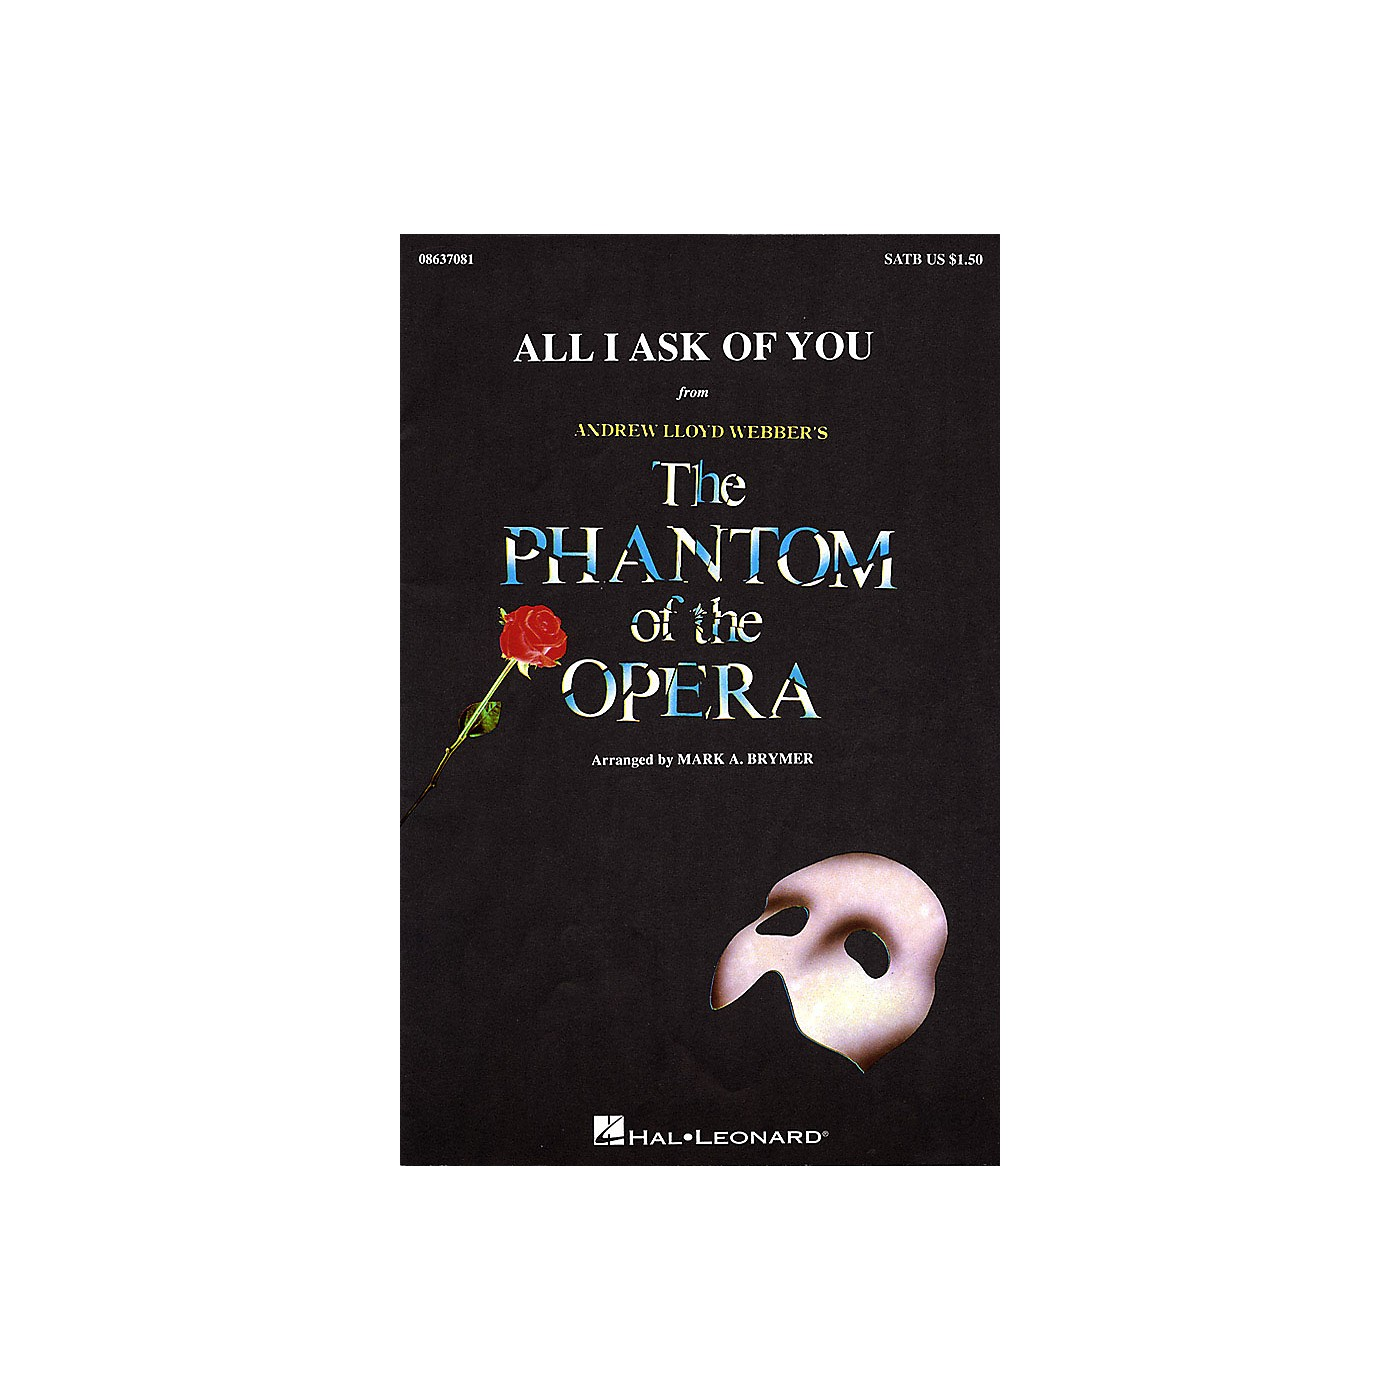 Hal Leonard All I Ask of You (from The Phantom of the Opera) ShowTrax CD by Barbra Streisand Arranged by Mark Brymer thumbnail